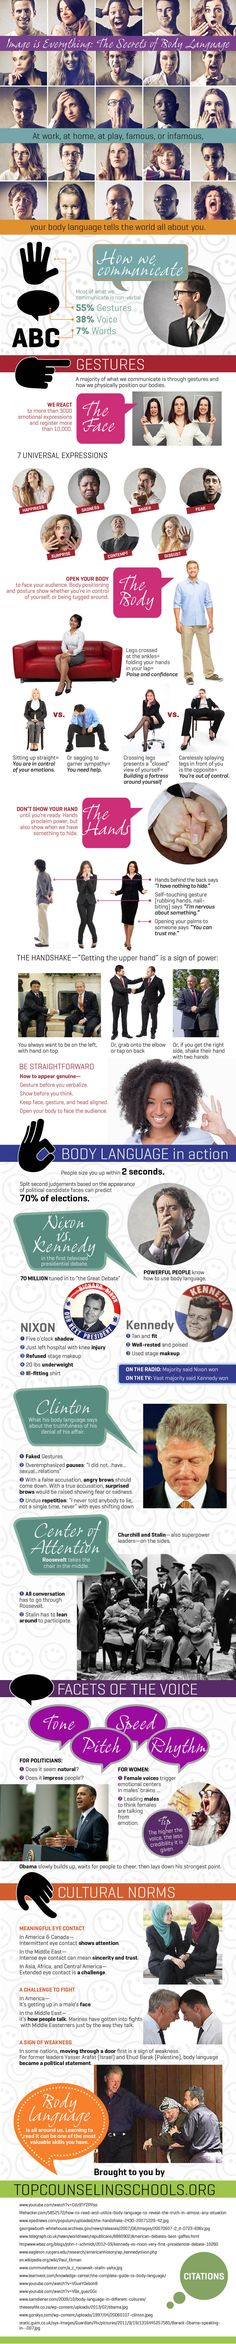 Body Language: An infographic